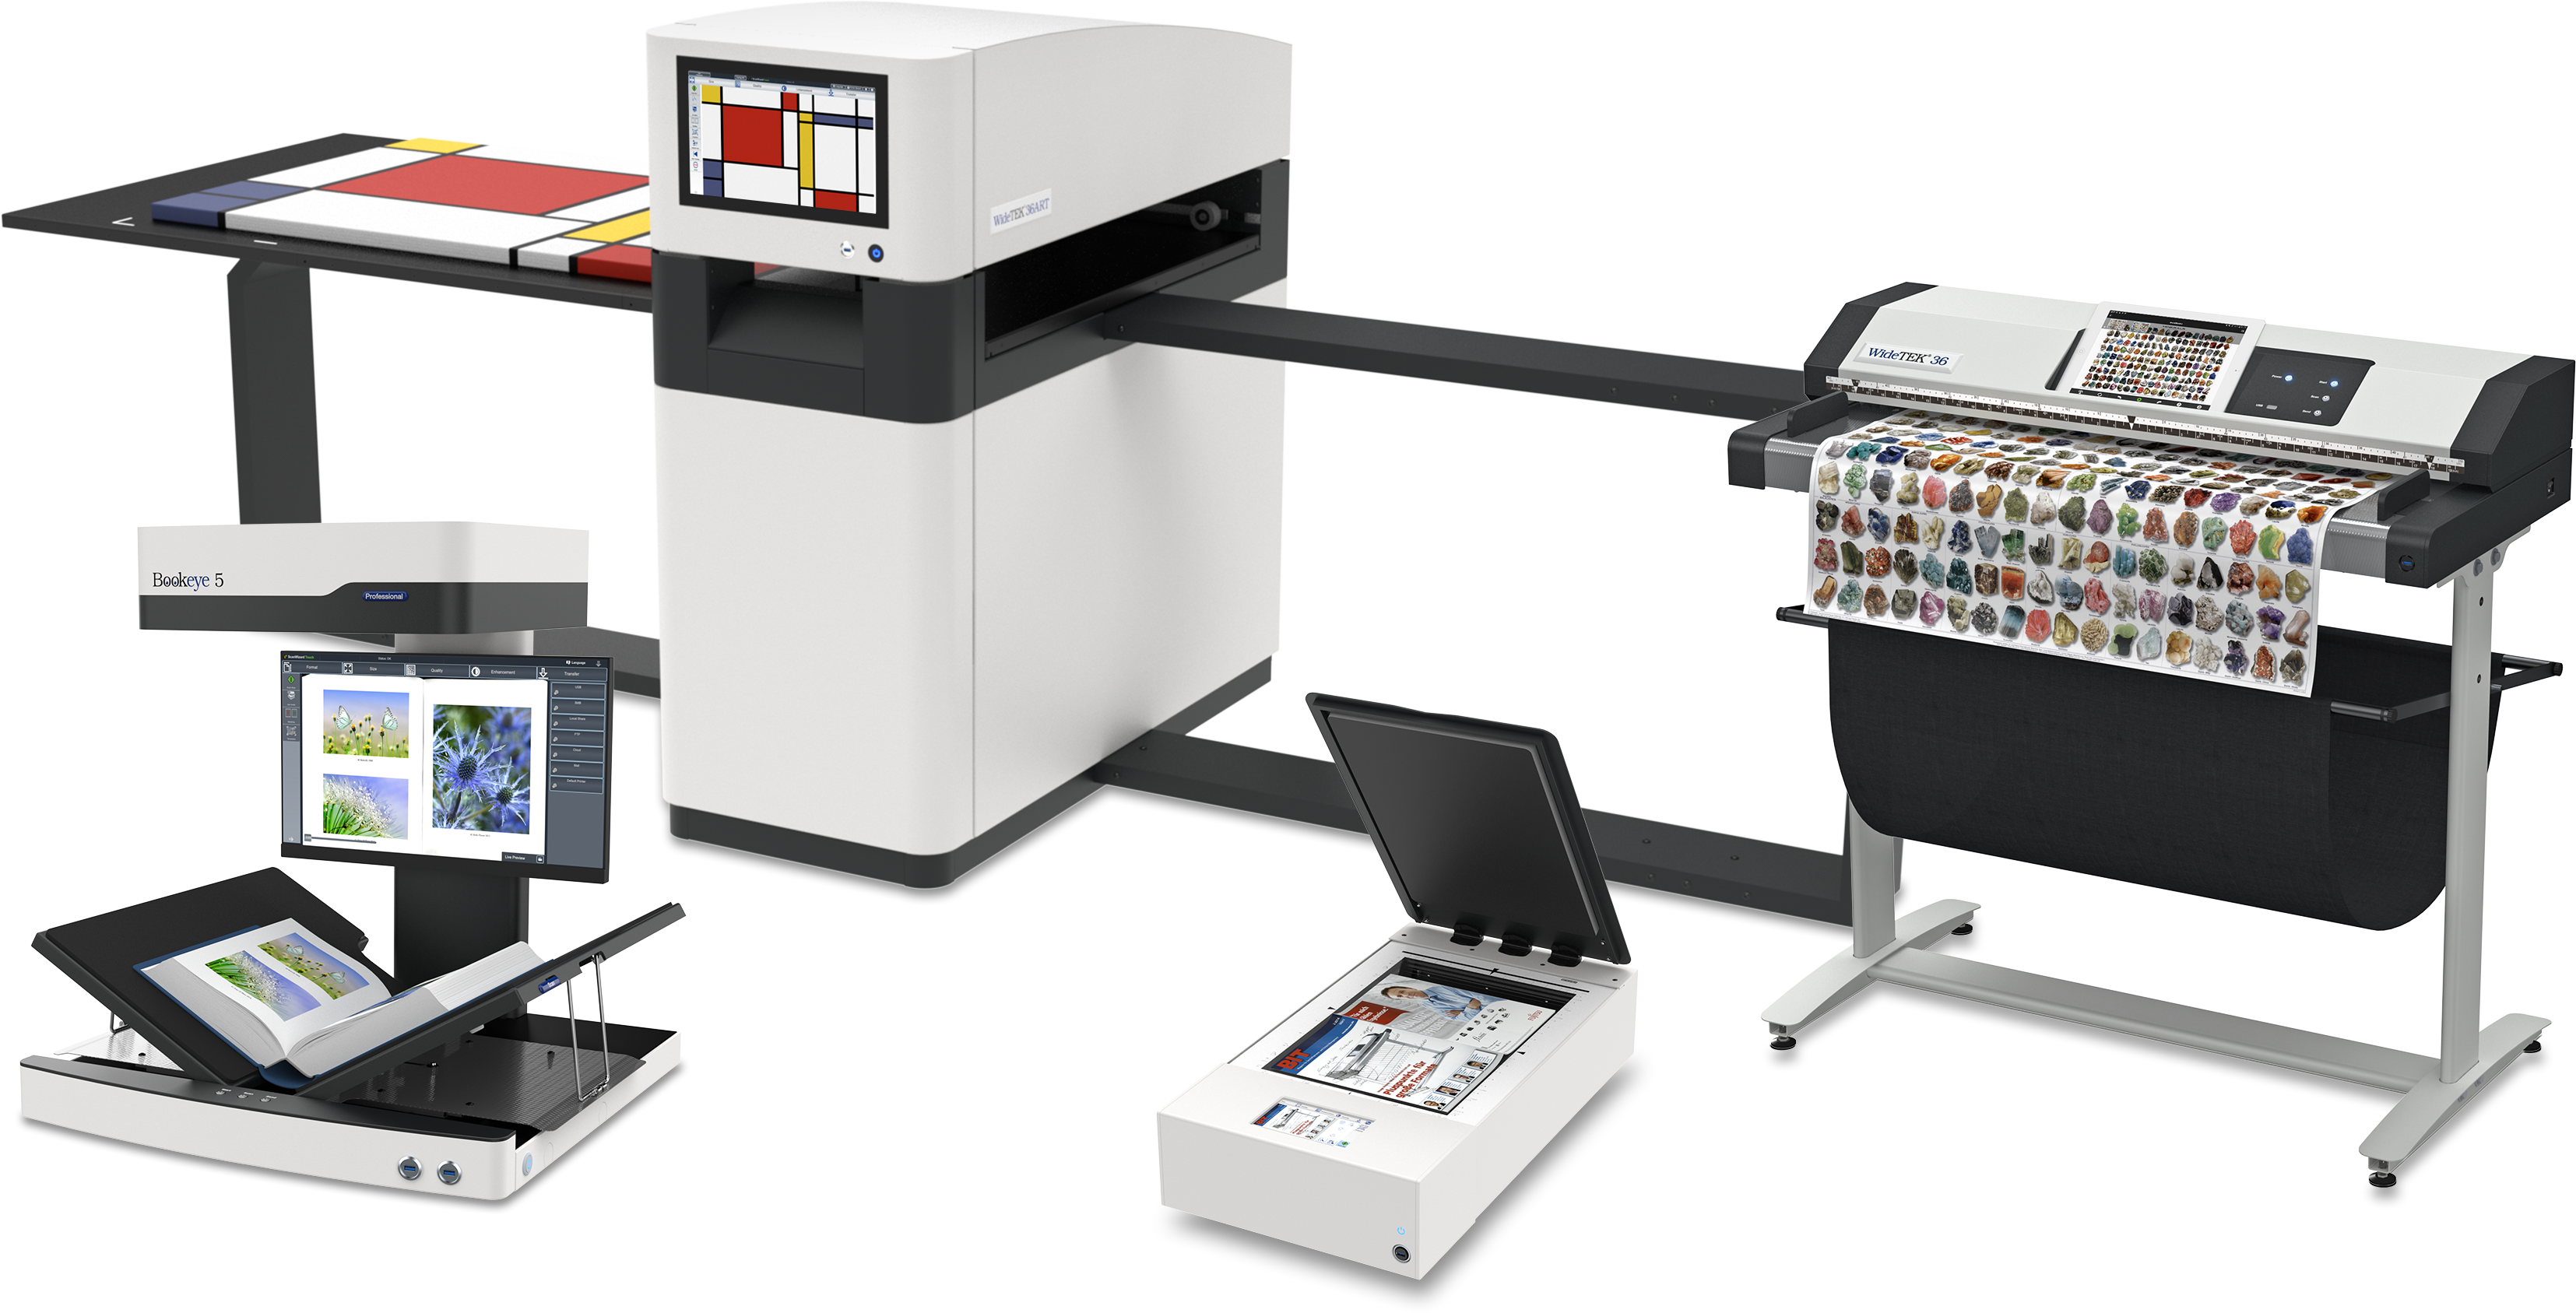 Image Access offers book, flatbed, sheetfeed, duplex & art scanners for digitizing large format originals for archives, libraries, museums & industry.